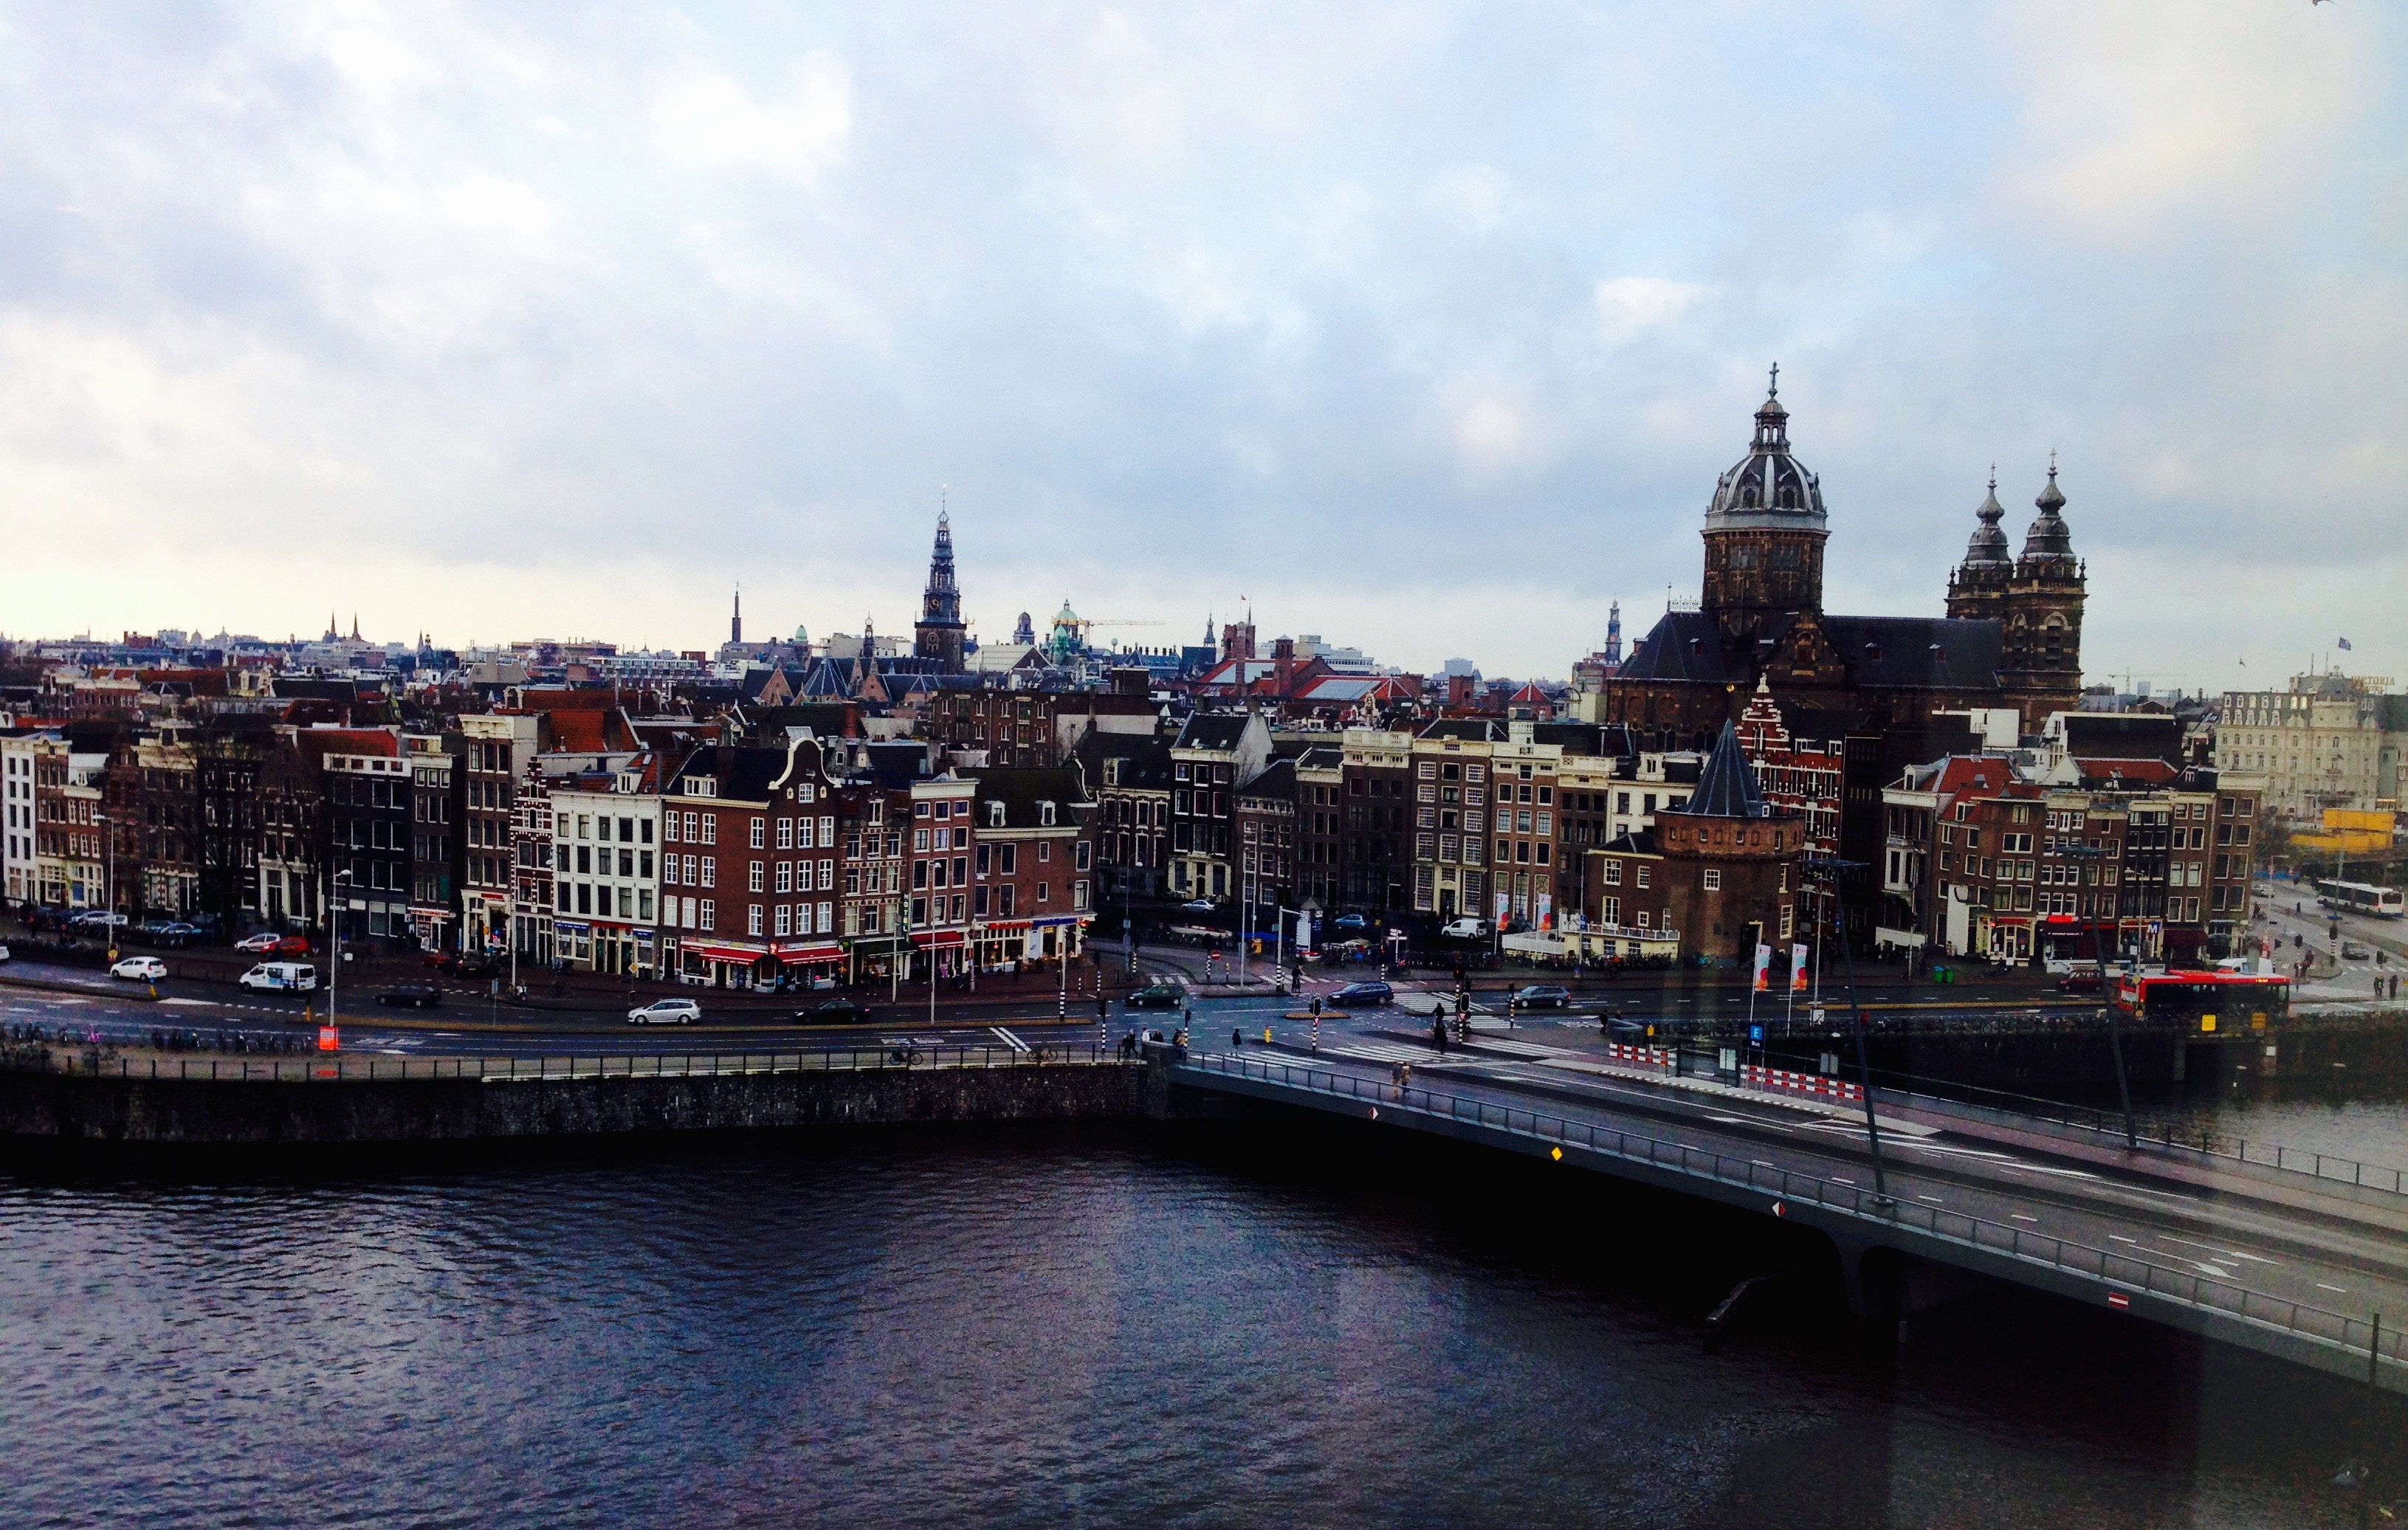 Doubletree by Hilton Amsterdam Centraal Station City View from Room